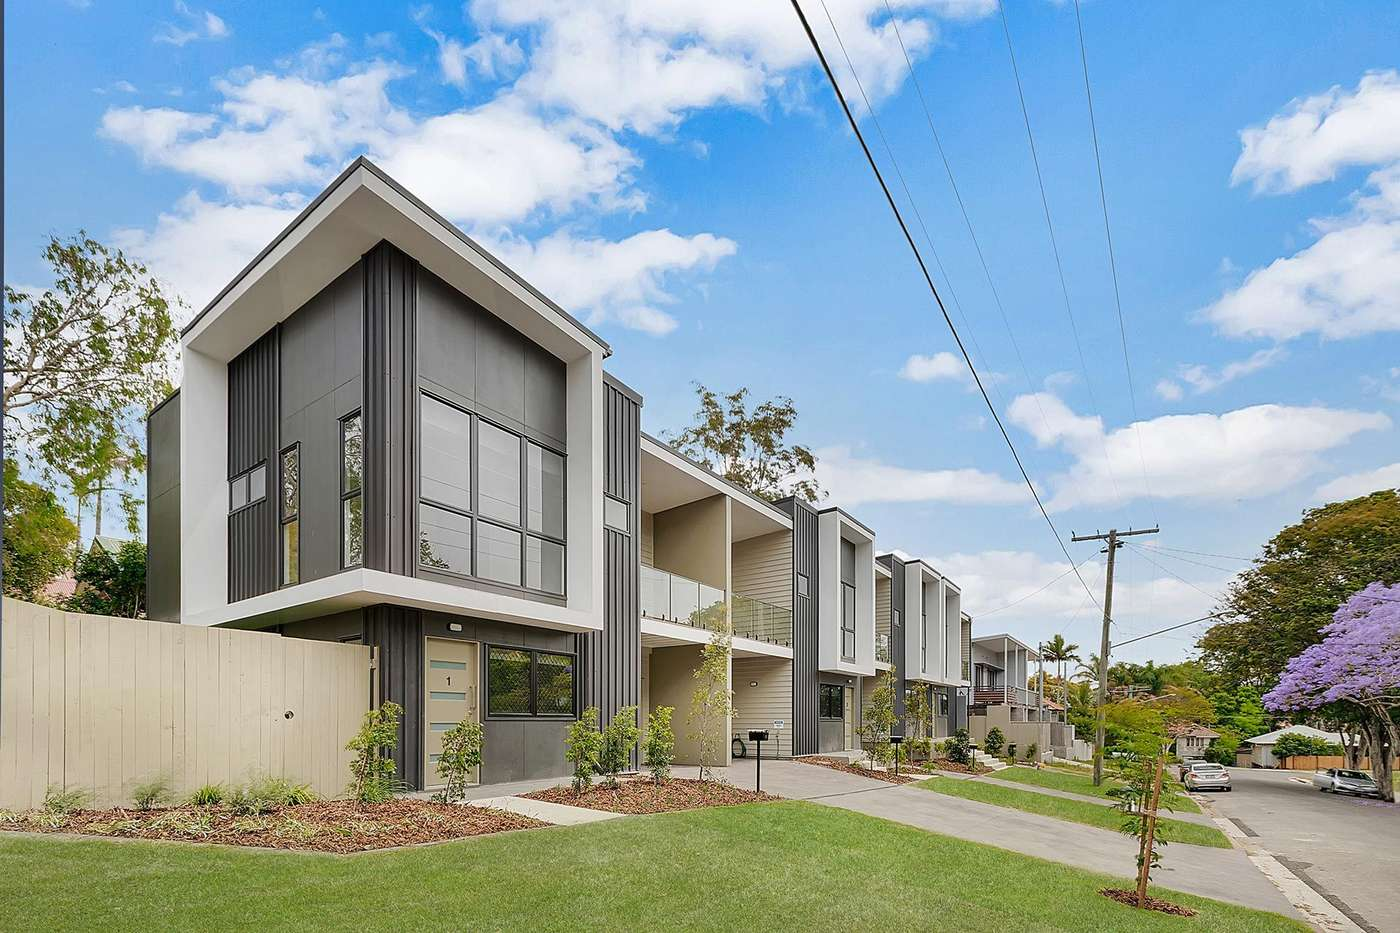 Main view of Homely townhouse listing, 1-4 1 Clyde Street, Moorooka, QLD 4105